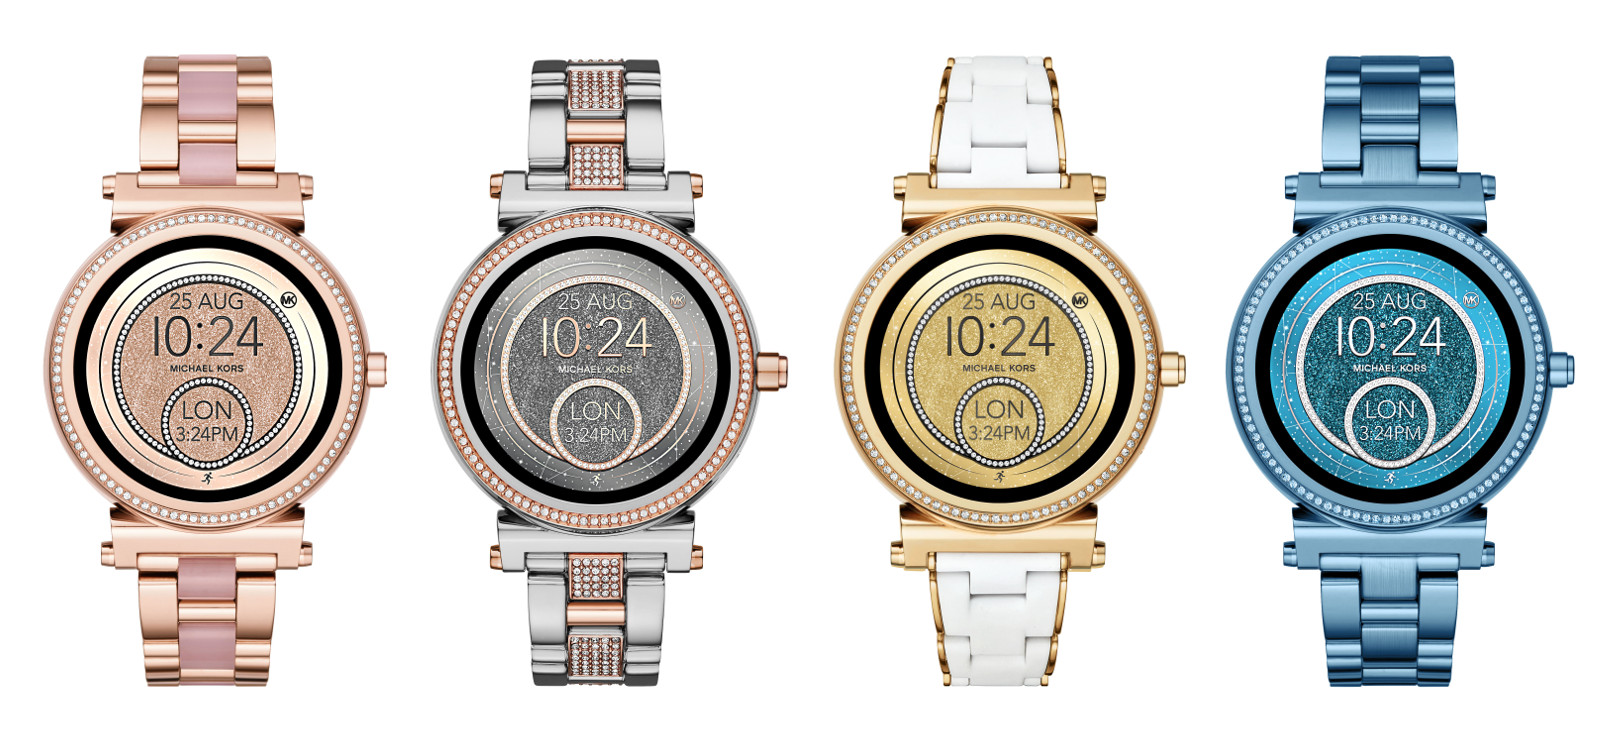 Michael Kors Releases New Models Of Grayson And Sofie Android Wear